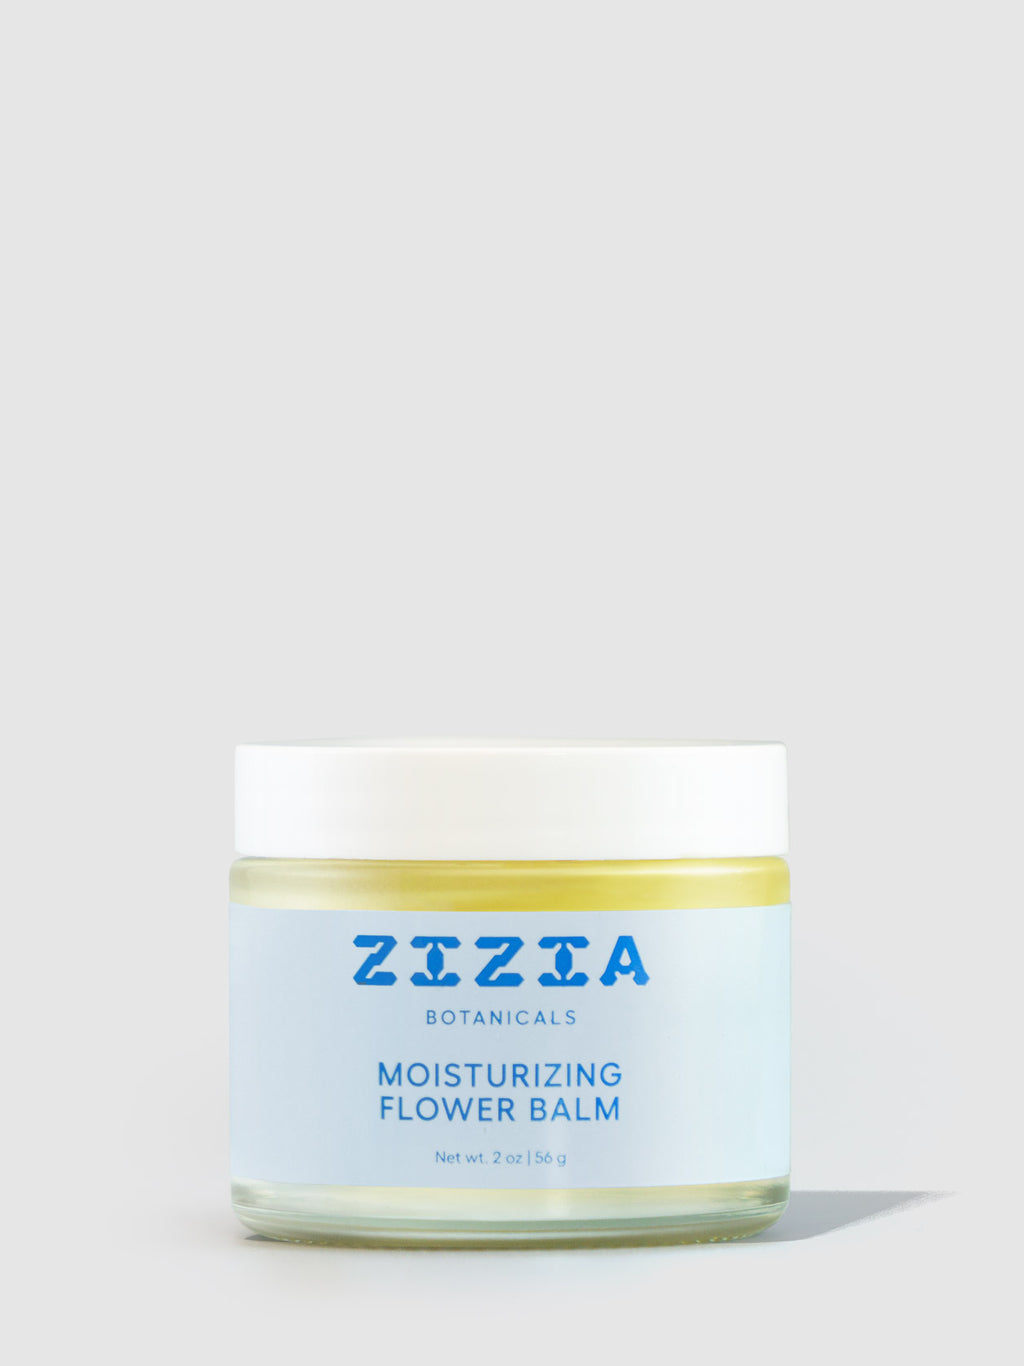 Moisturizing Flower Balm